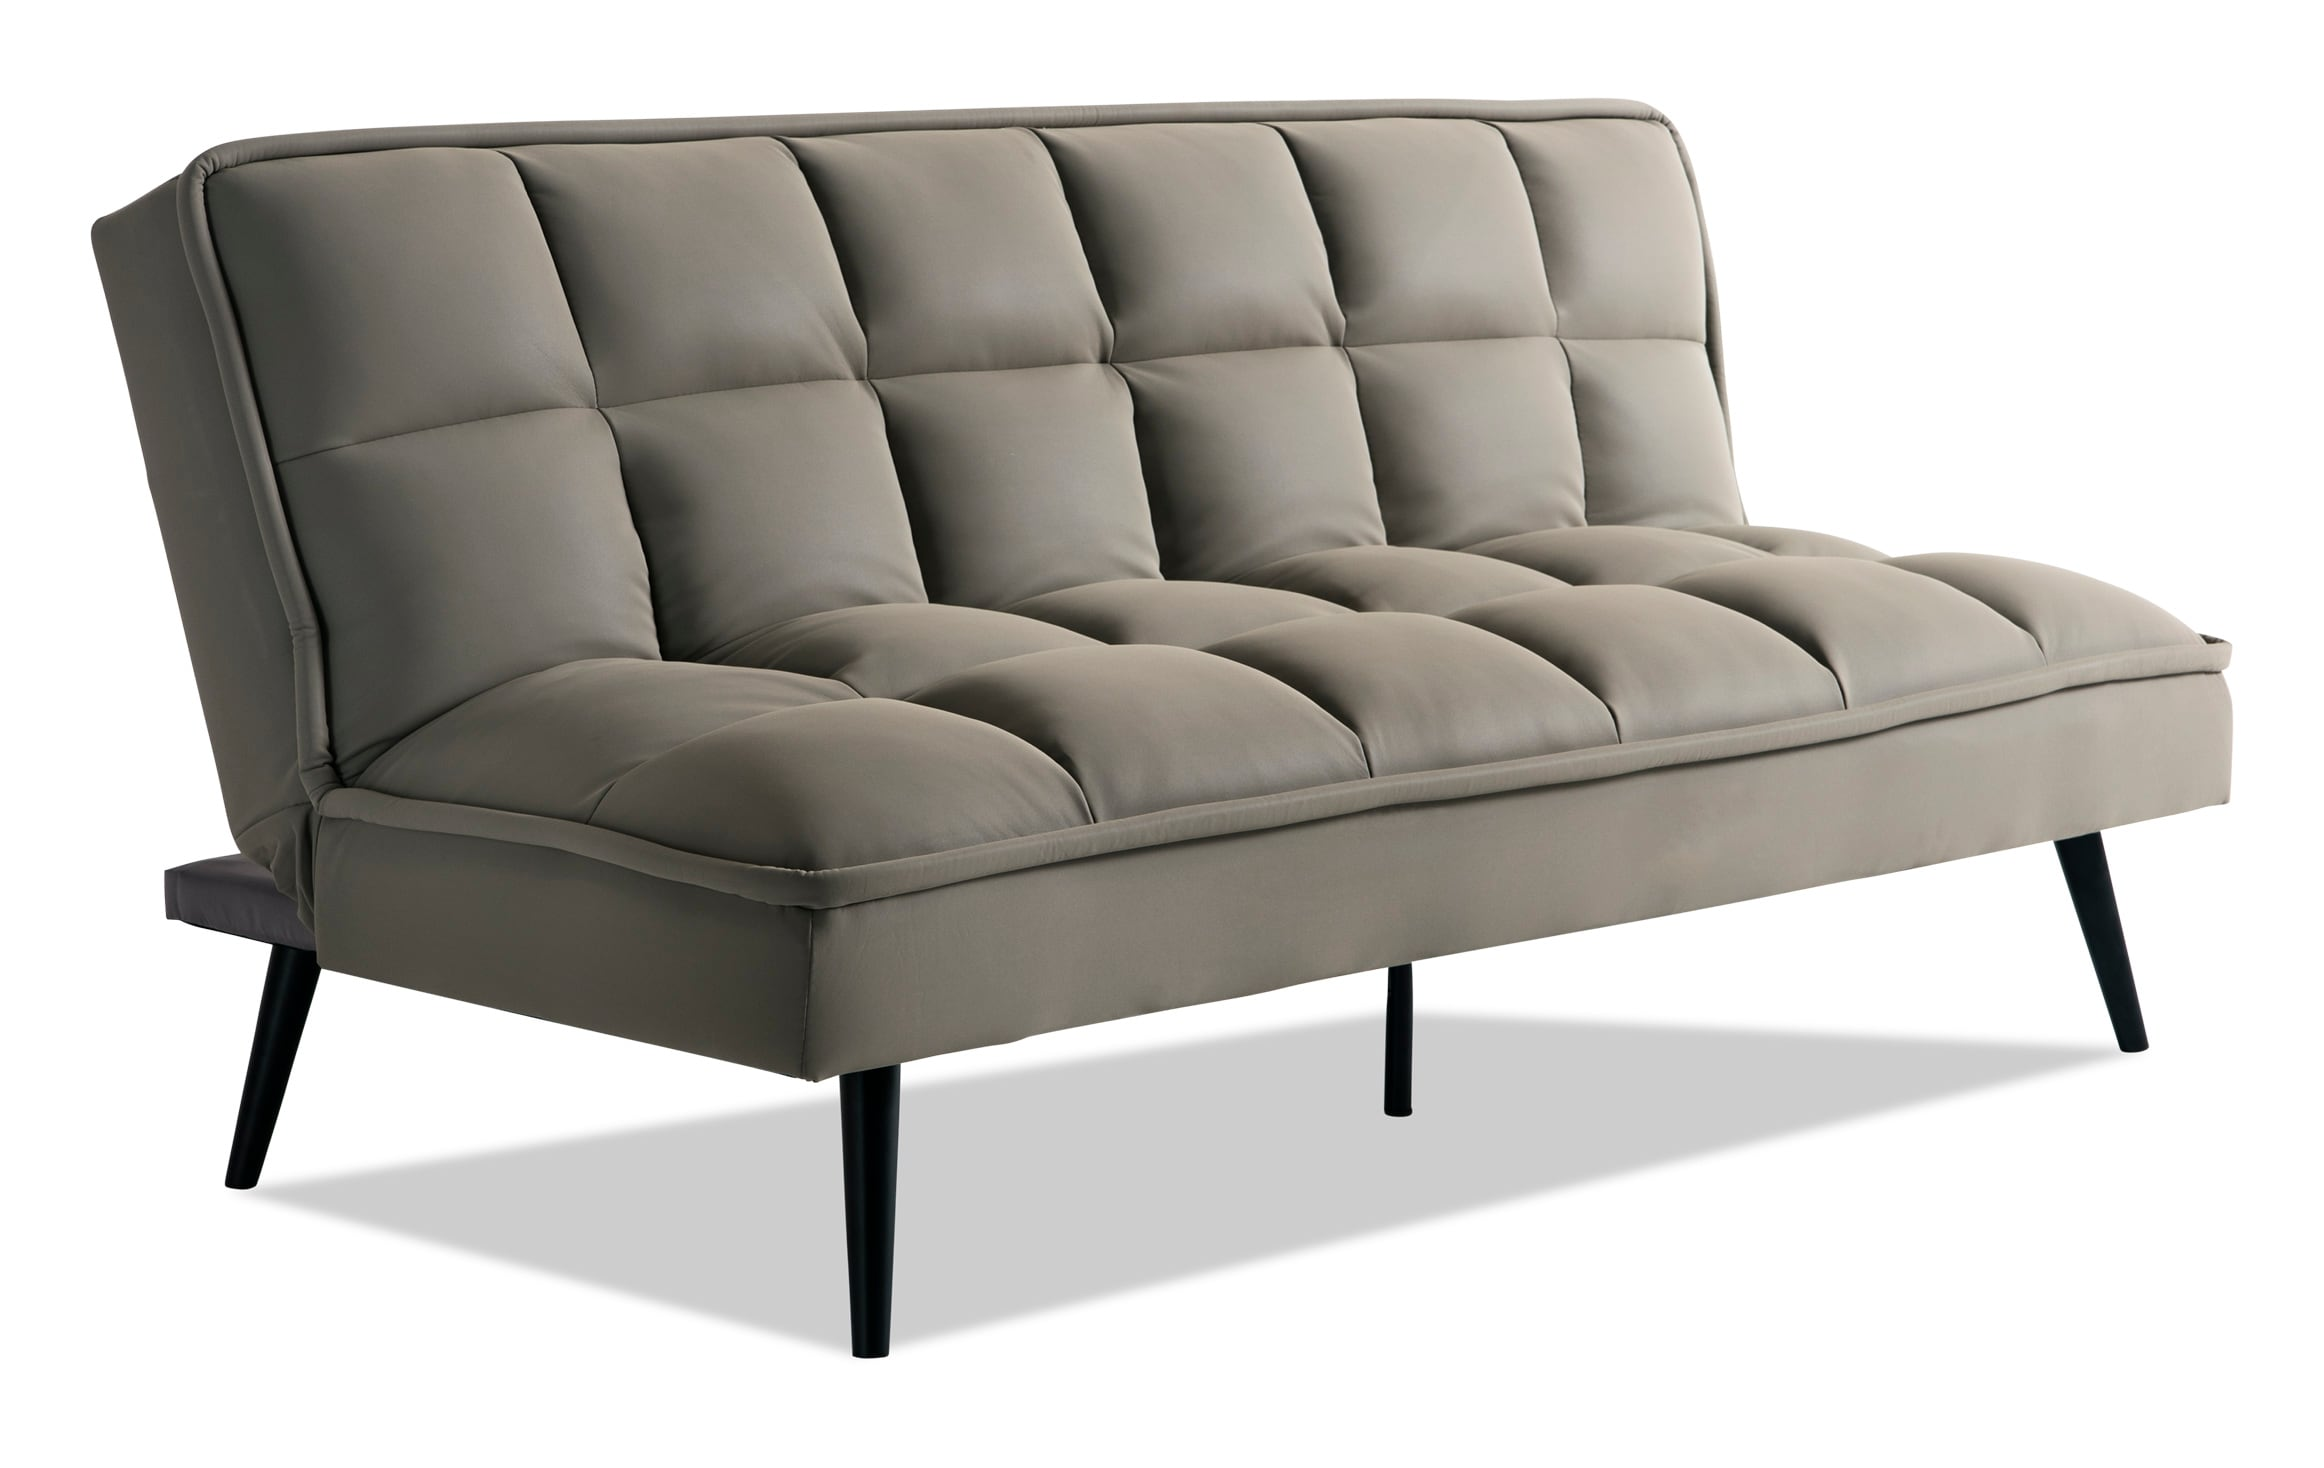 Carly Gray Bob O Matic Futon Outlet